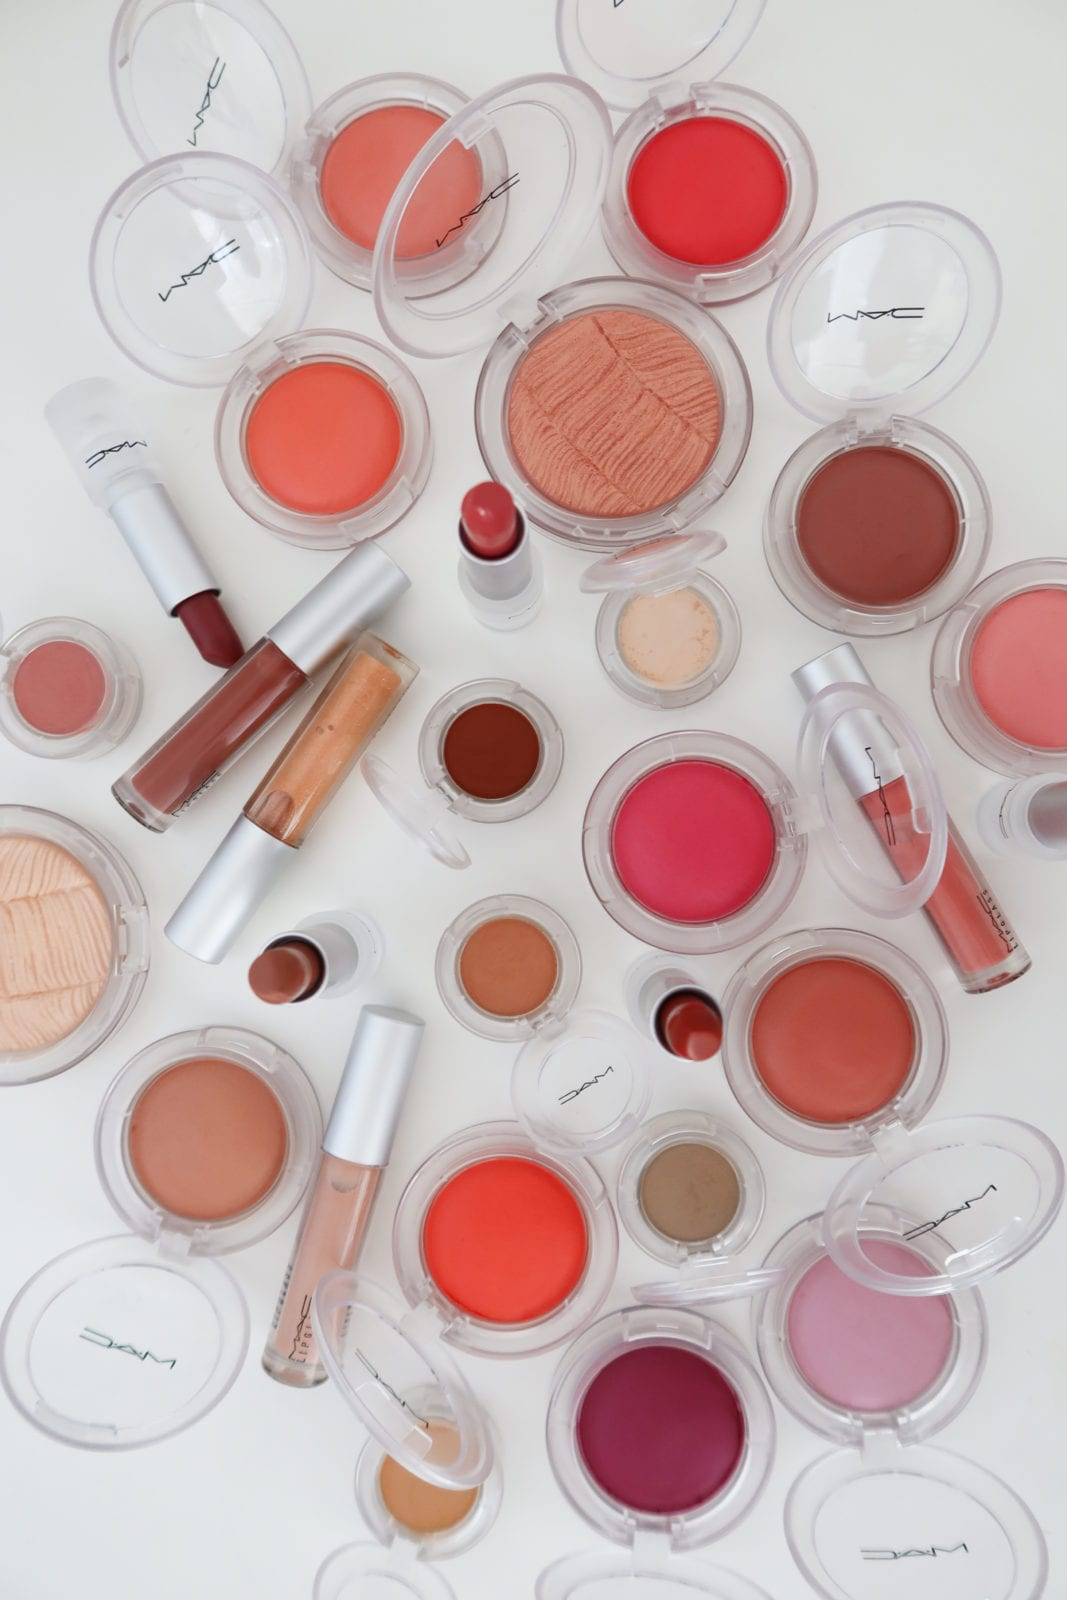 This is a flat lay of the entire new MAC Cosmetics beauty collection.